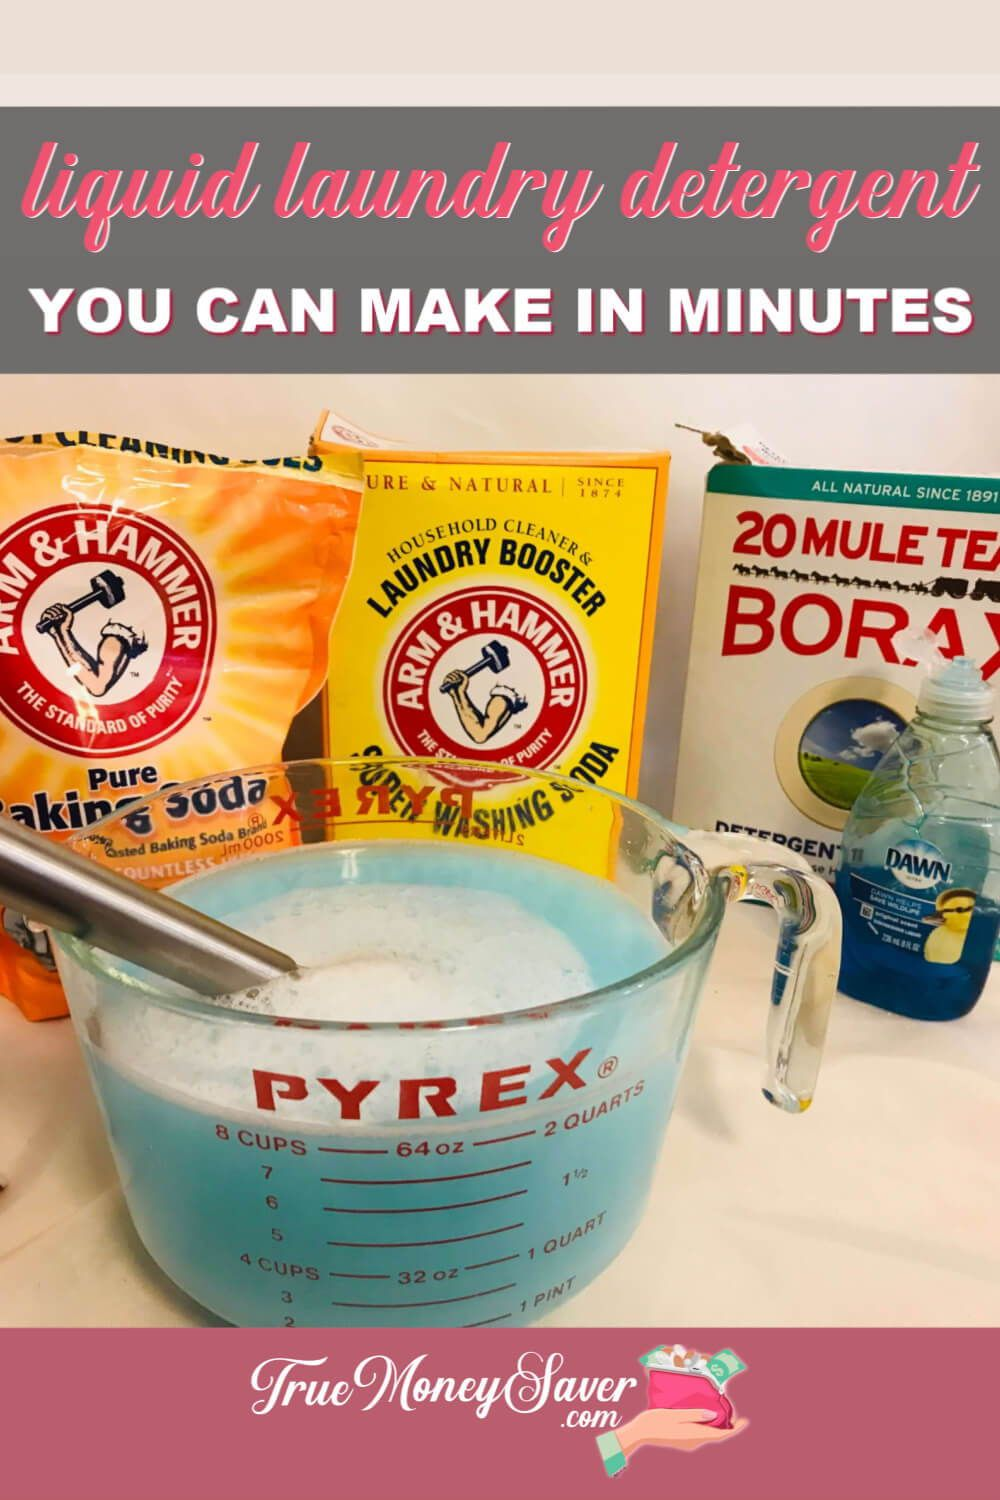 The Best Liquid Laundry Detergent You Can Diy In Minutes In 2020 Homemade Laundry Detergent Liquid Homemade Laundry Detergent Diy Laundry Detergent Liquid